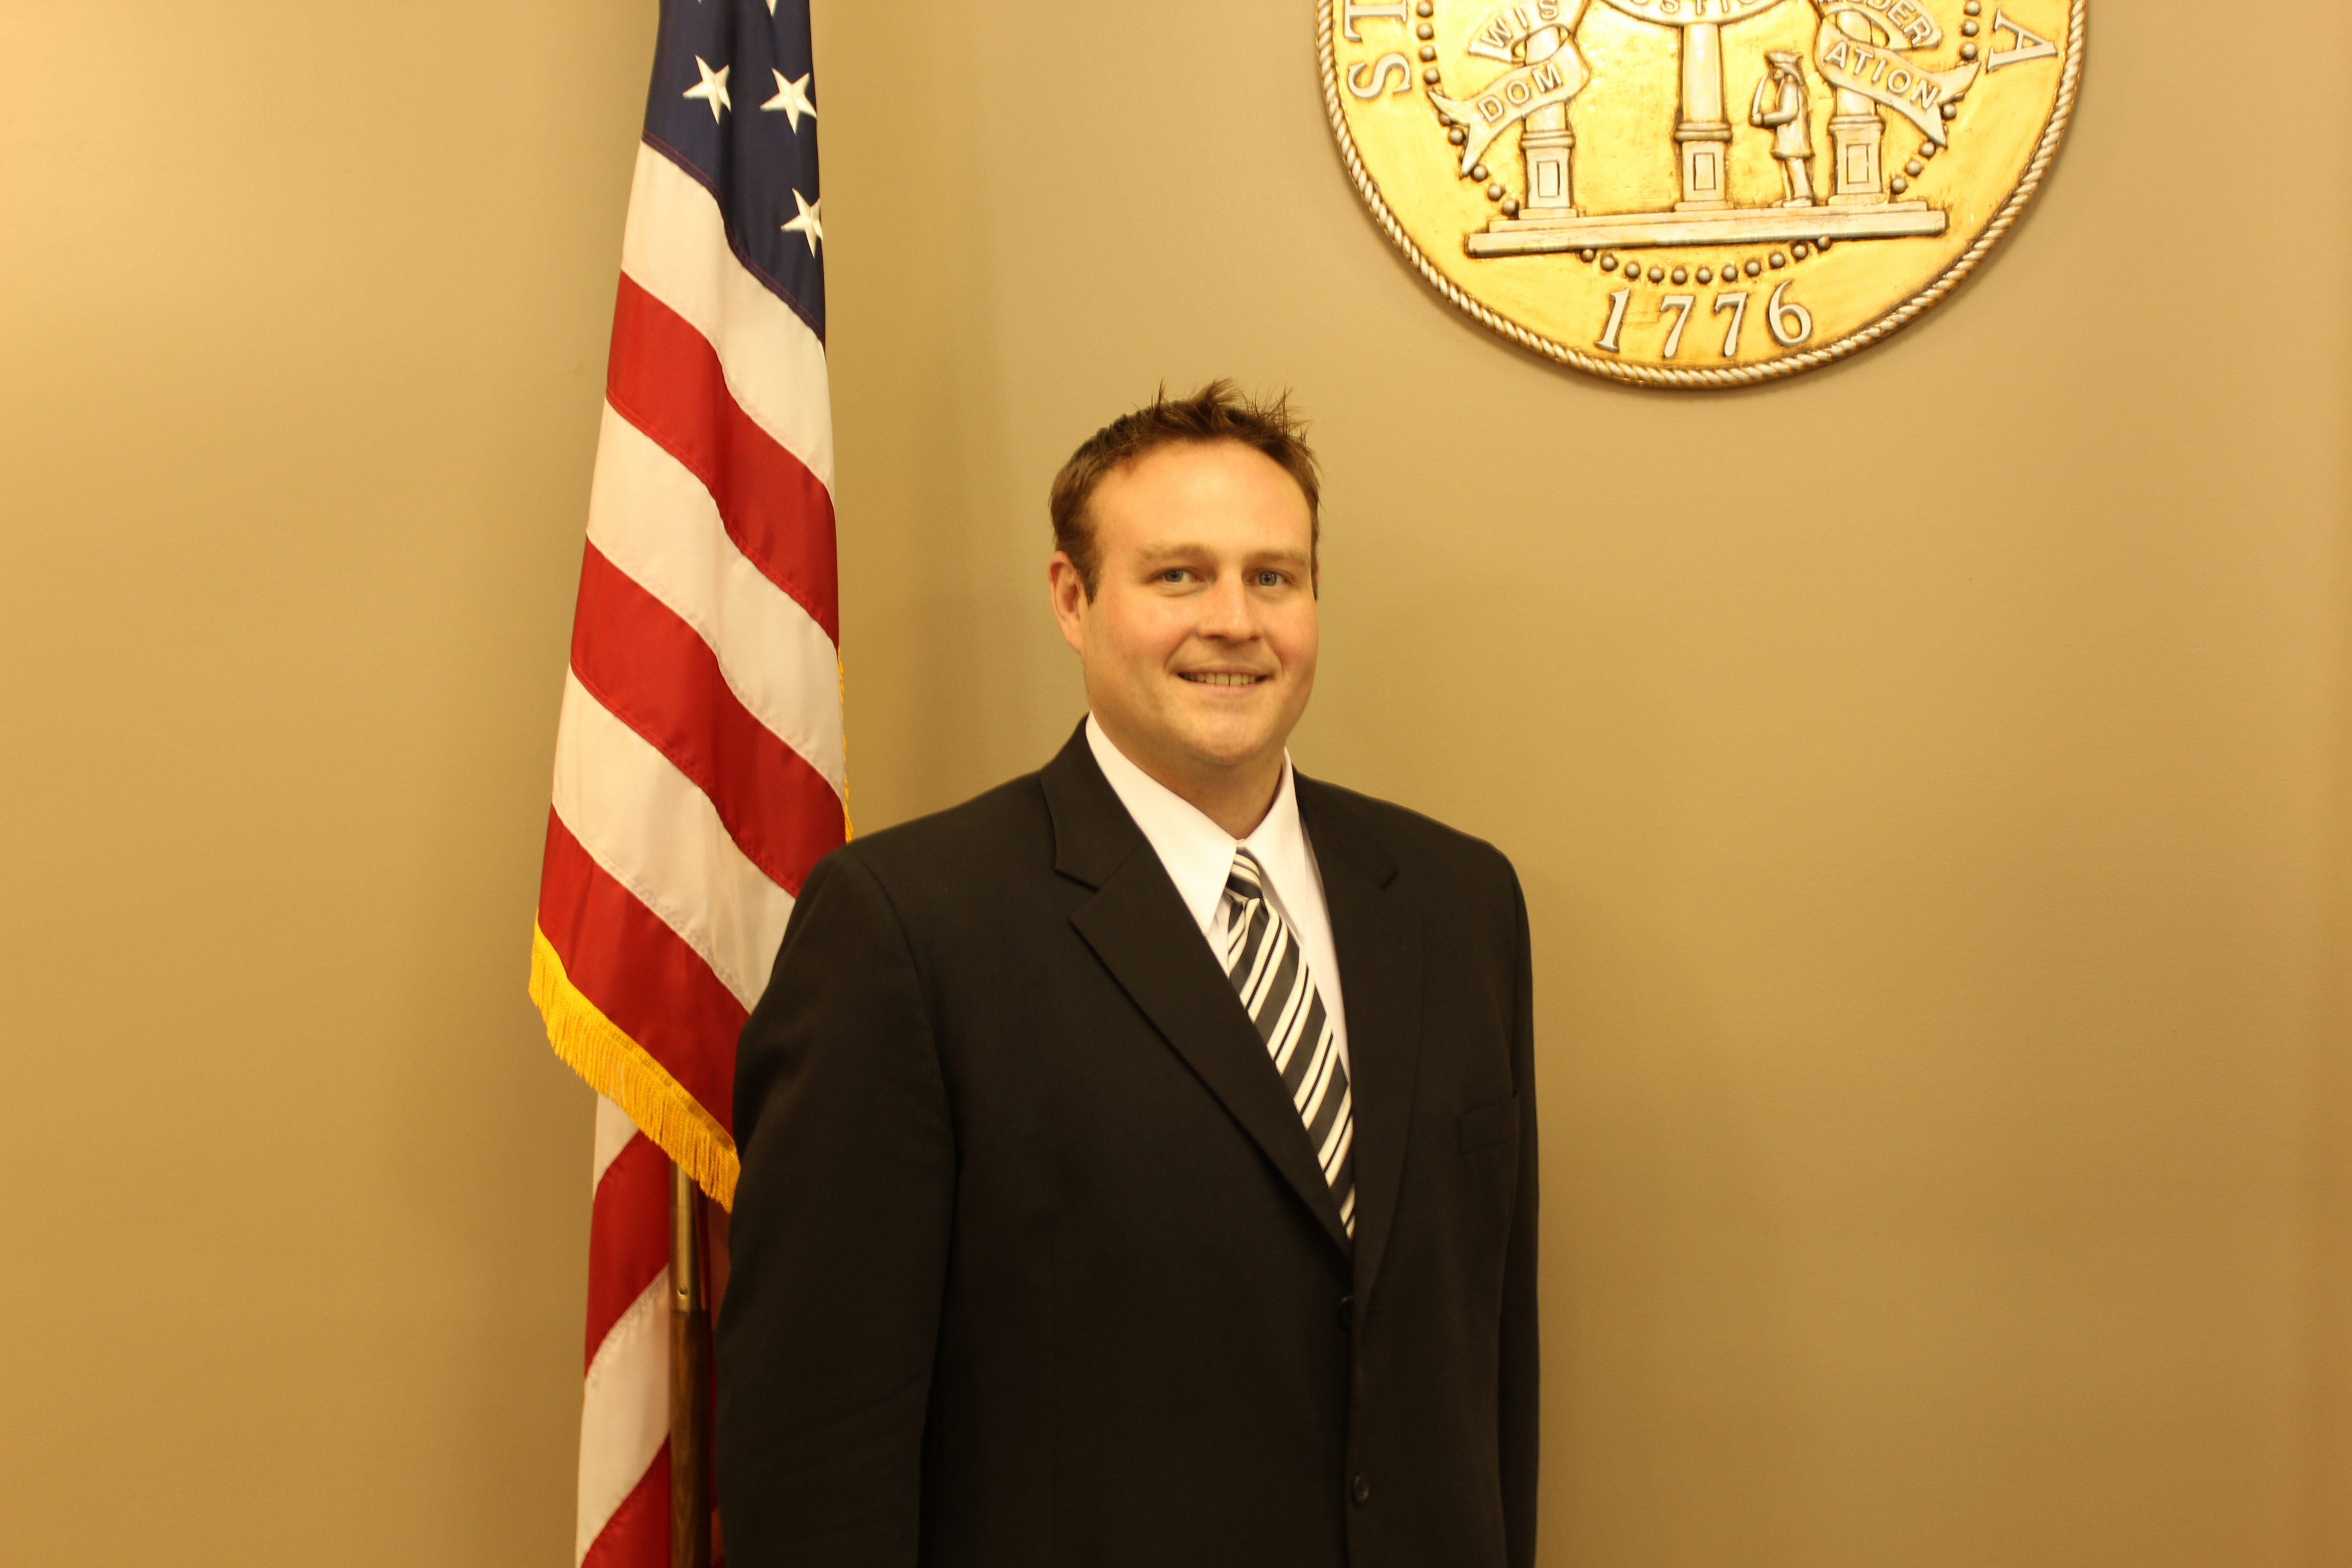 Commissioner Luke Gowen